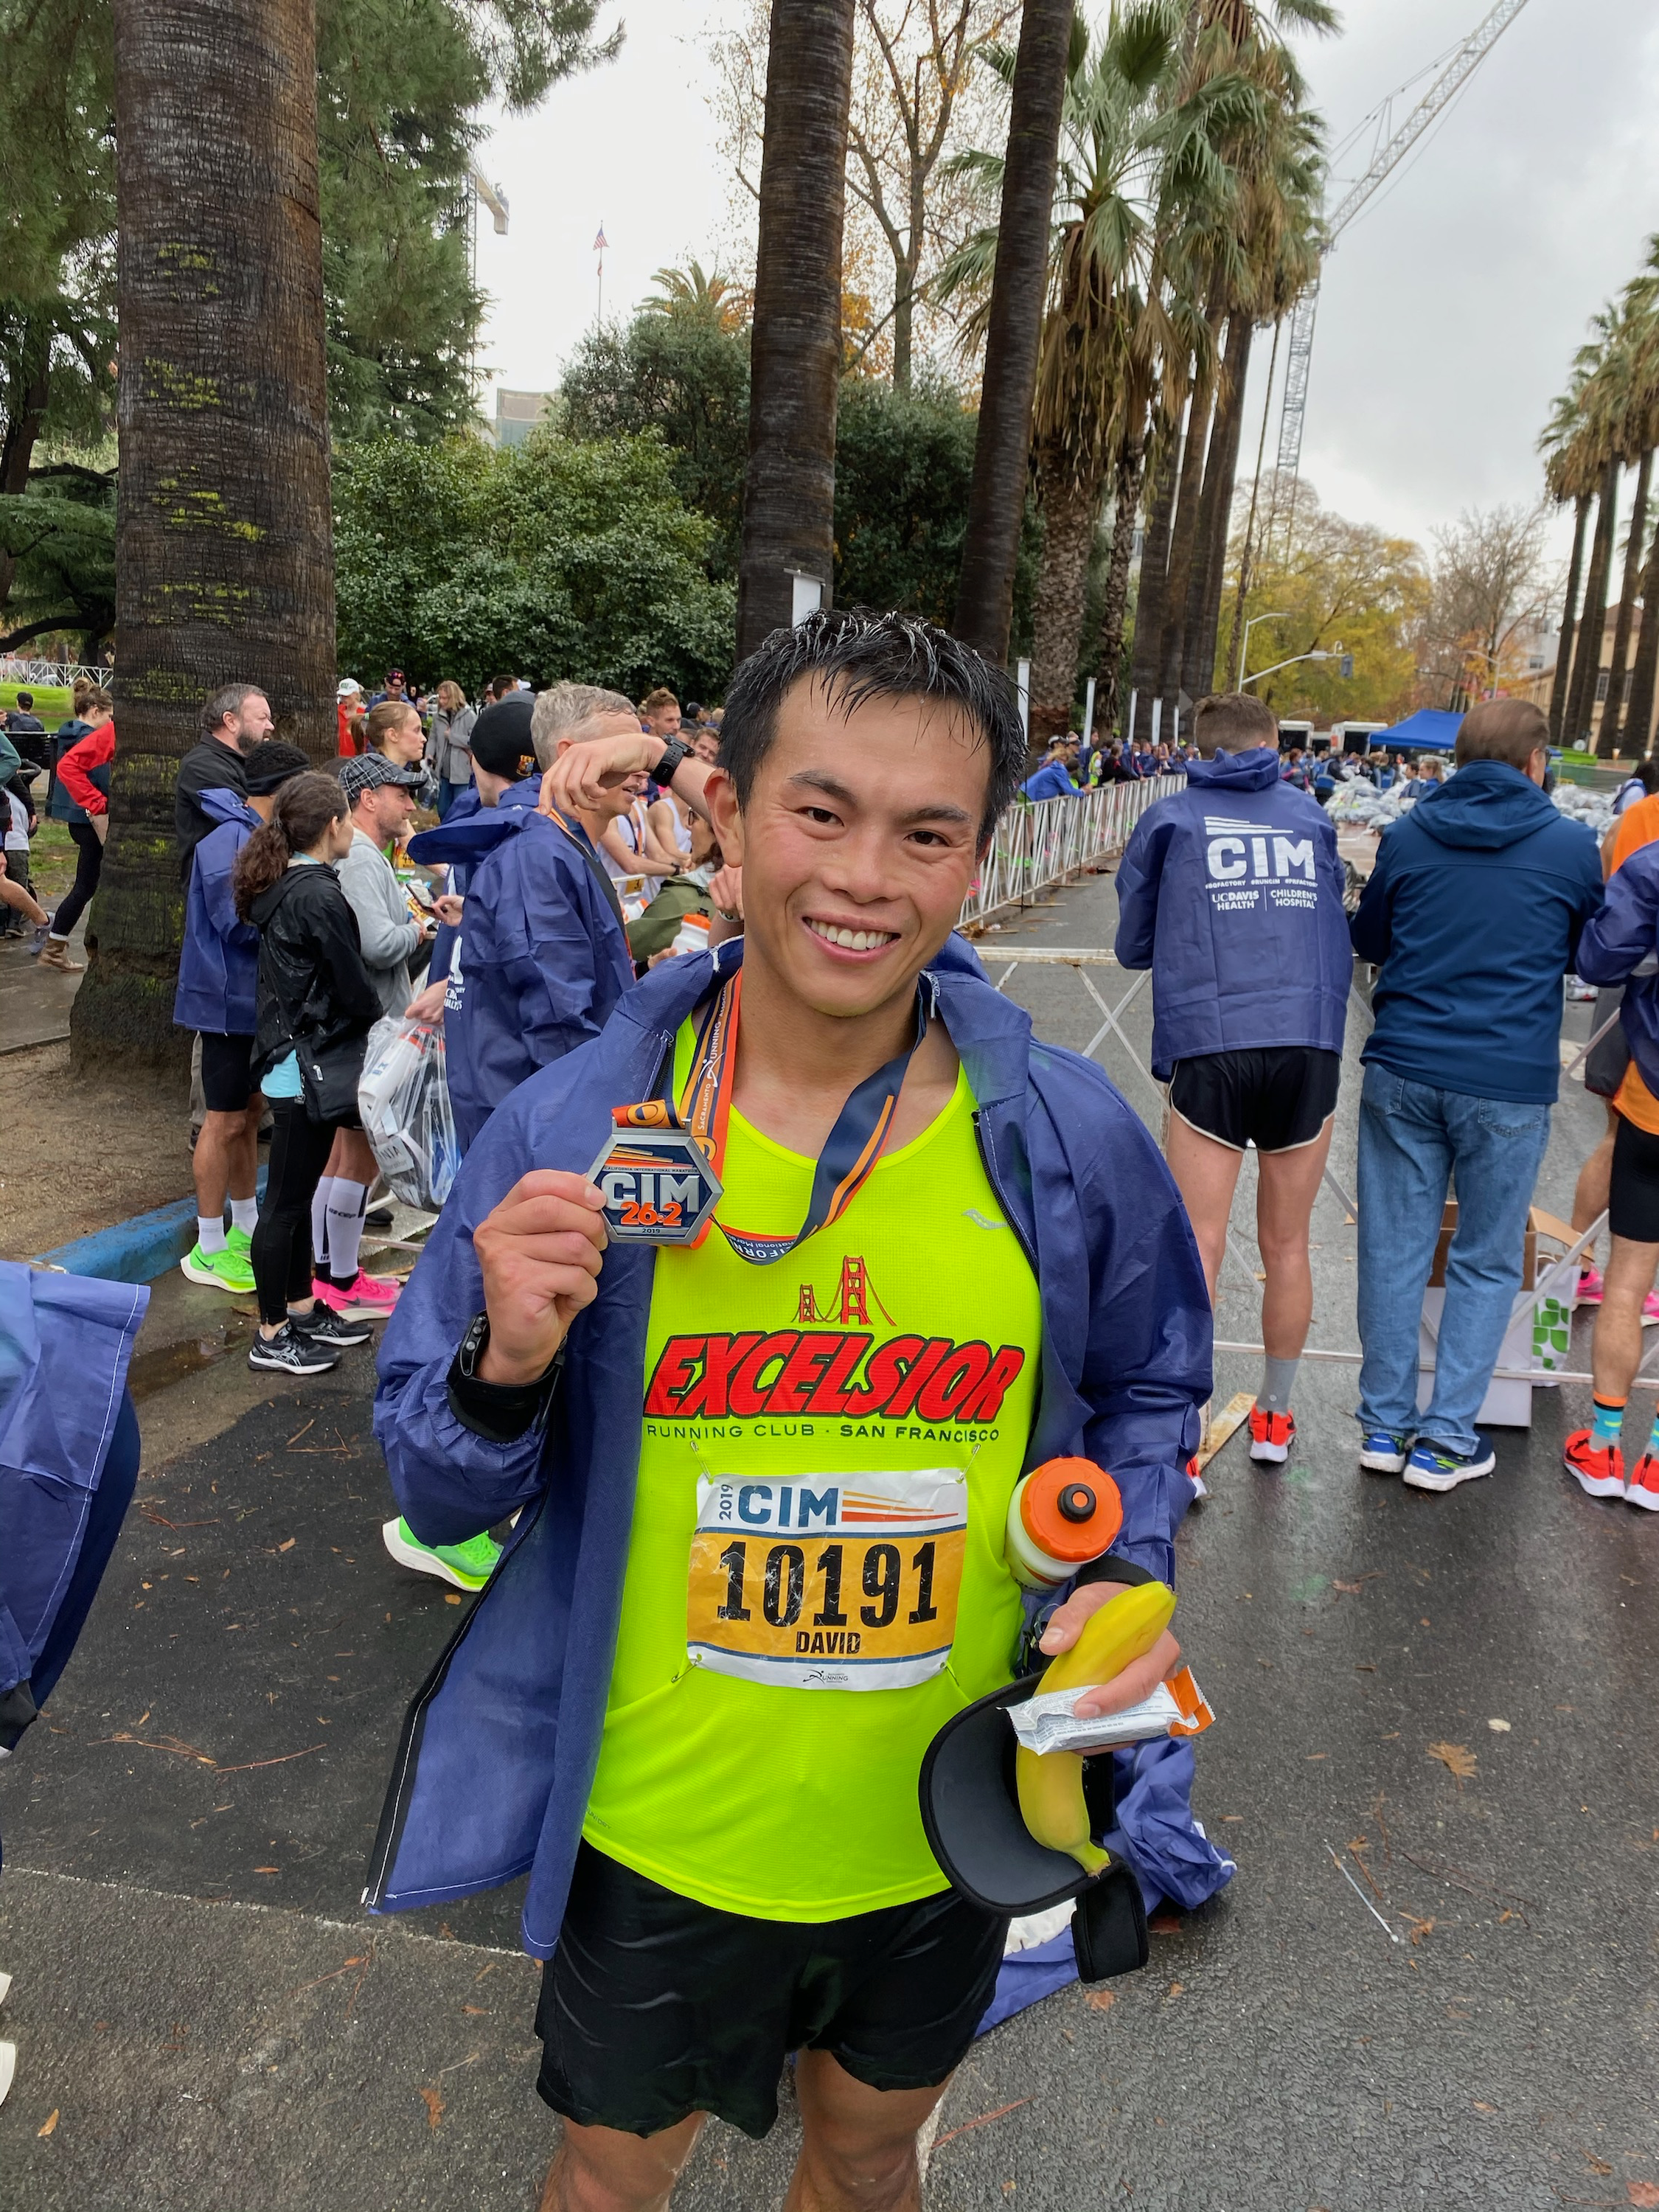 All smiles and very drenched at the finish line. Some of that is rain, I swear, although most of it is probably sweat. Maybe like 90% sweat and 10% rain. PC: Ricky Yean